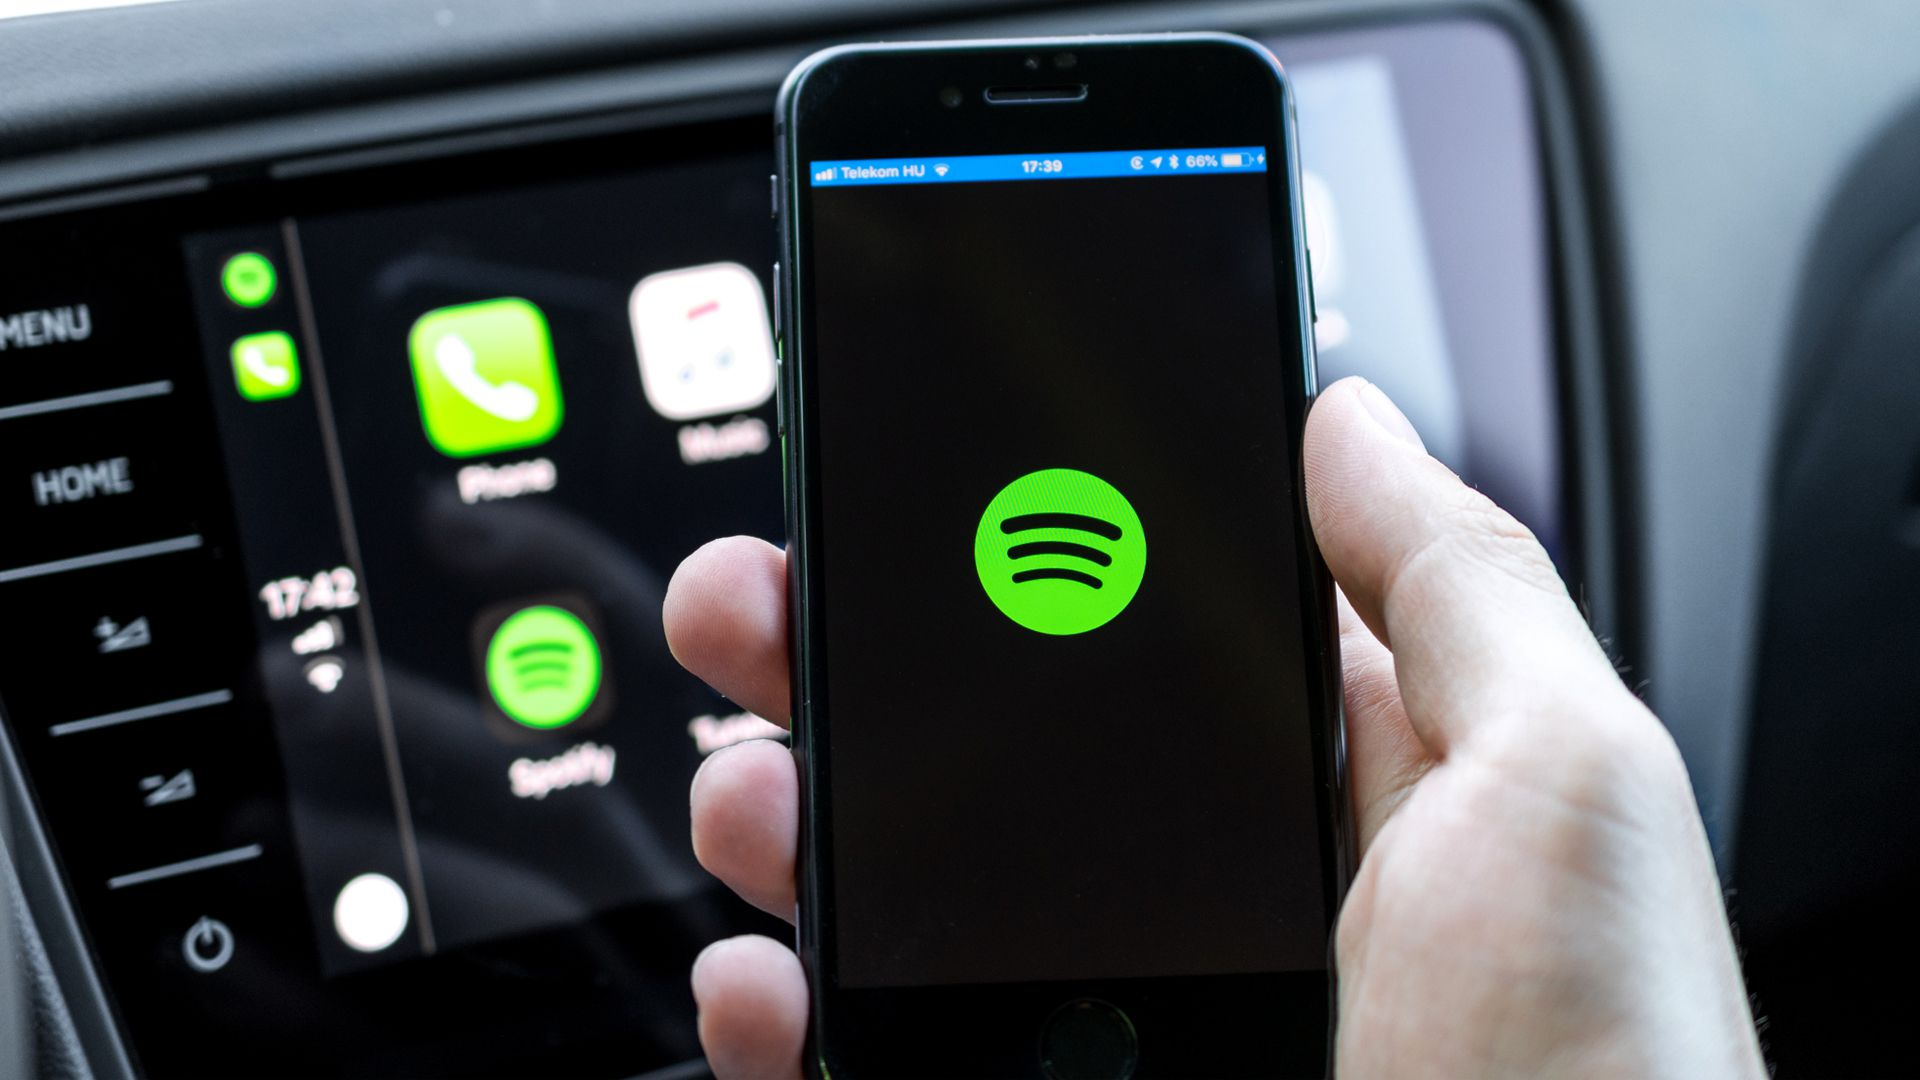 The Spotify App for iPhone Provides Better Quality Music